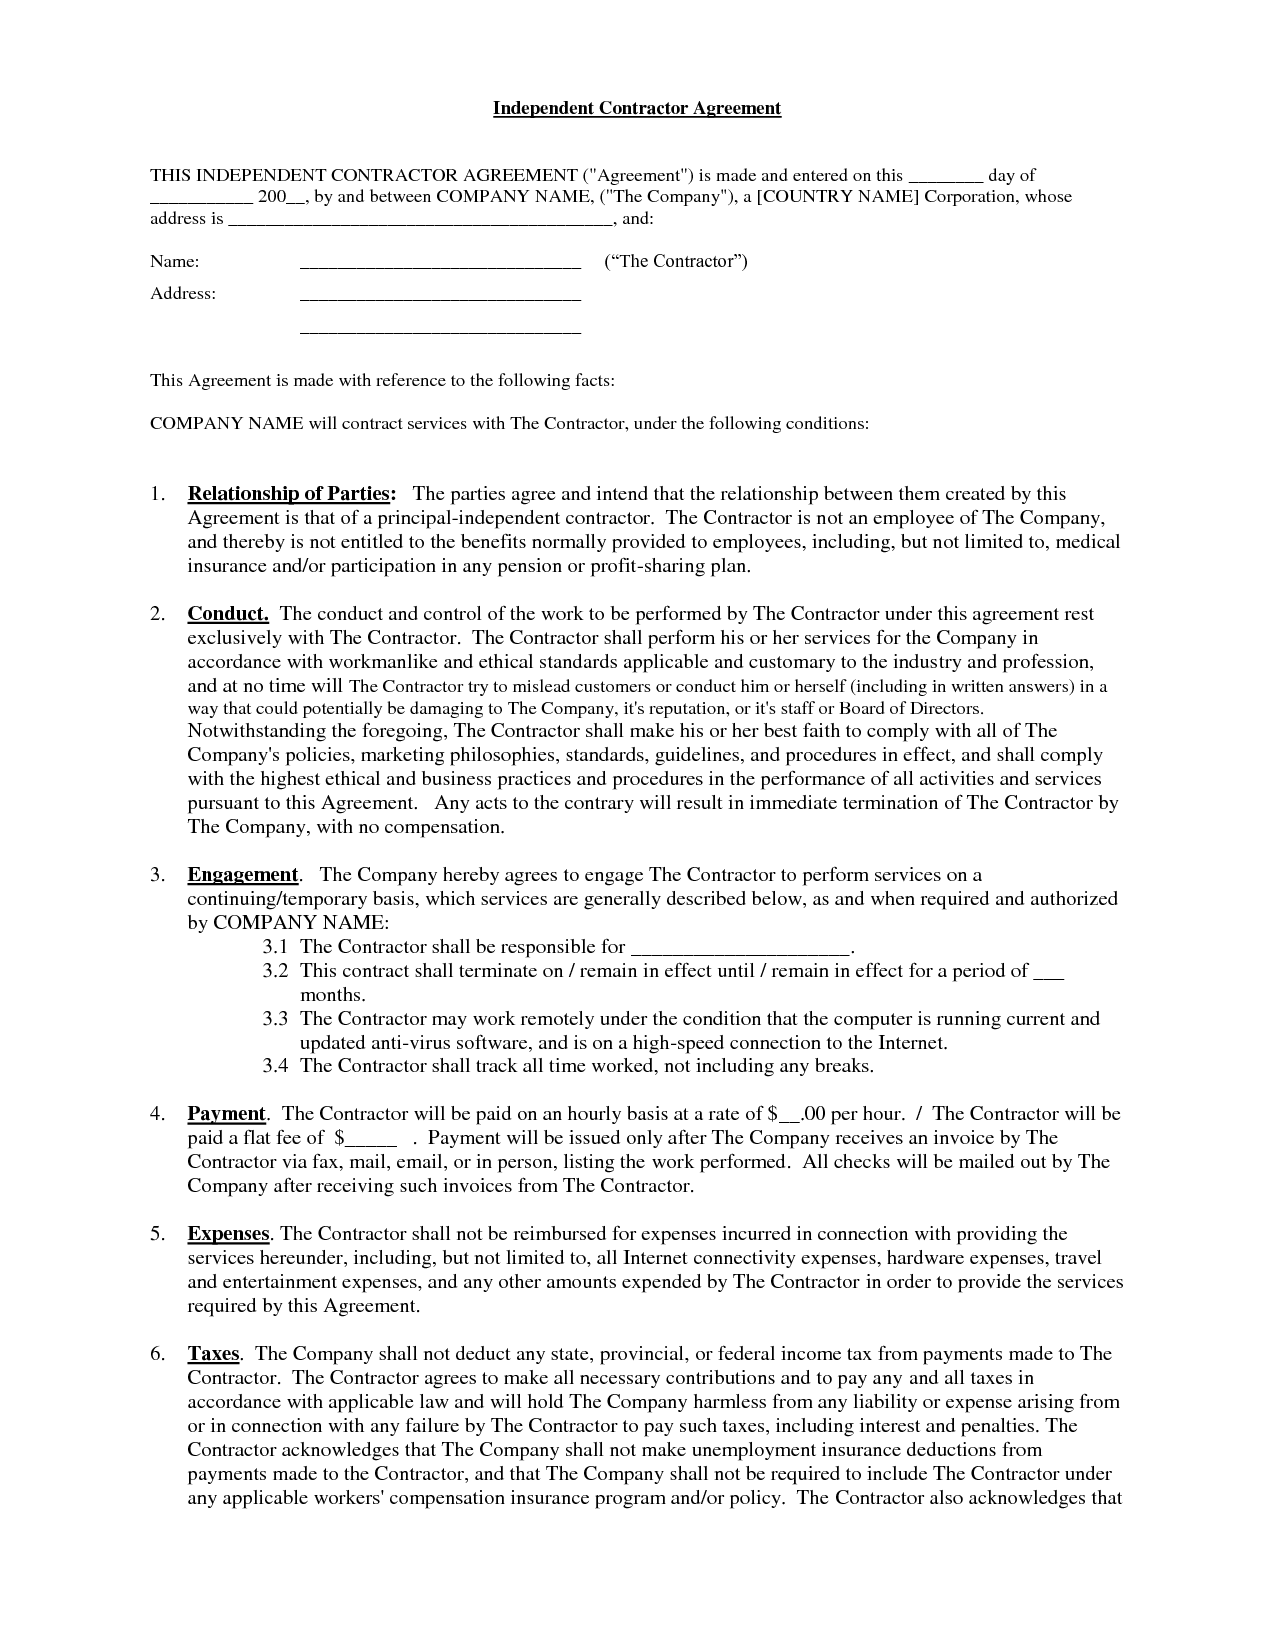 Independent contractor contract by brittanygibbons for Home builder contracts